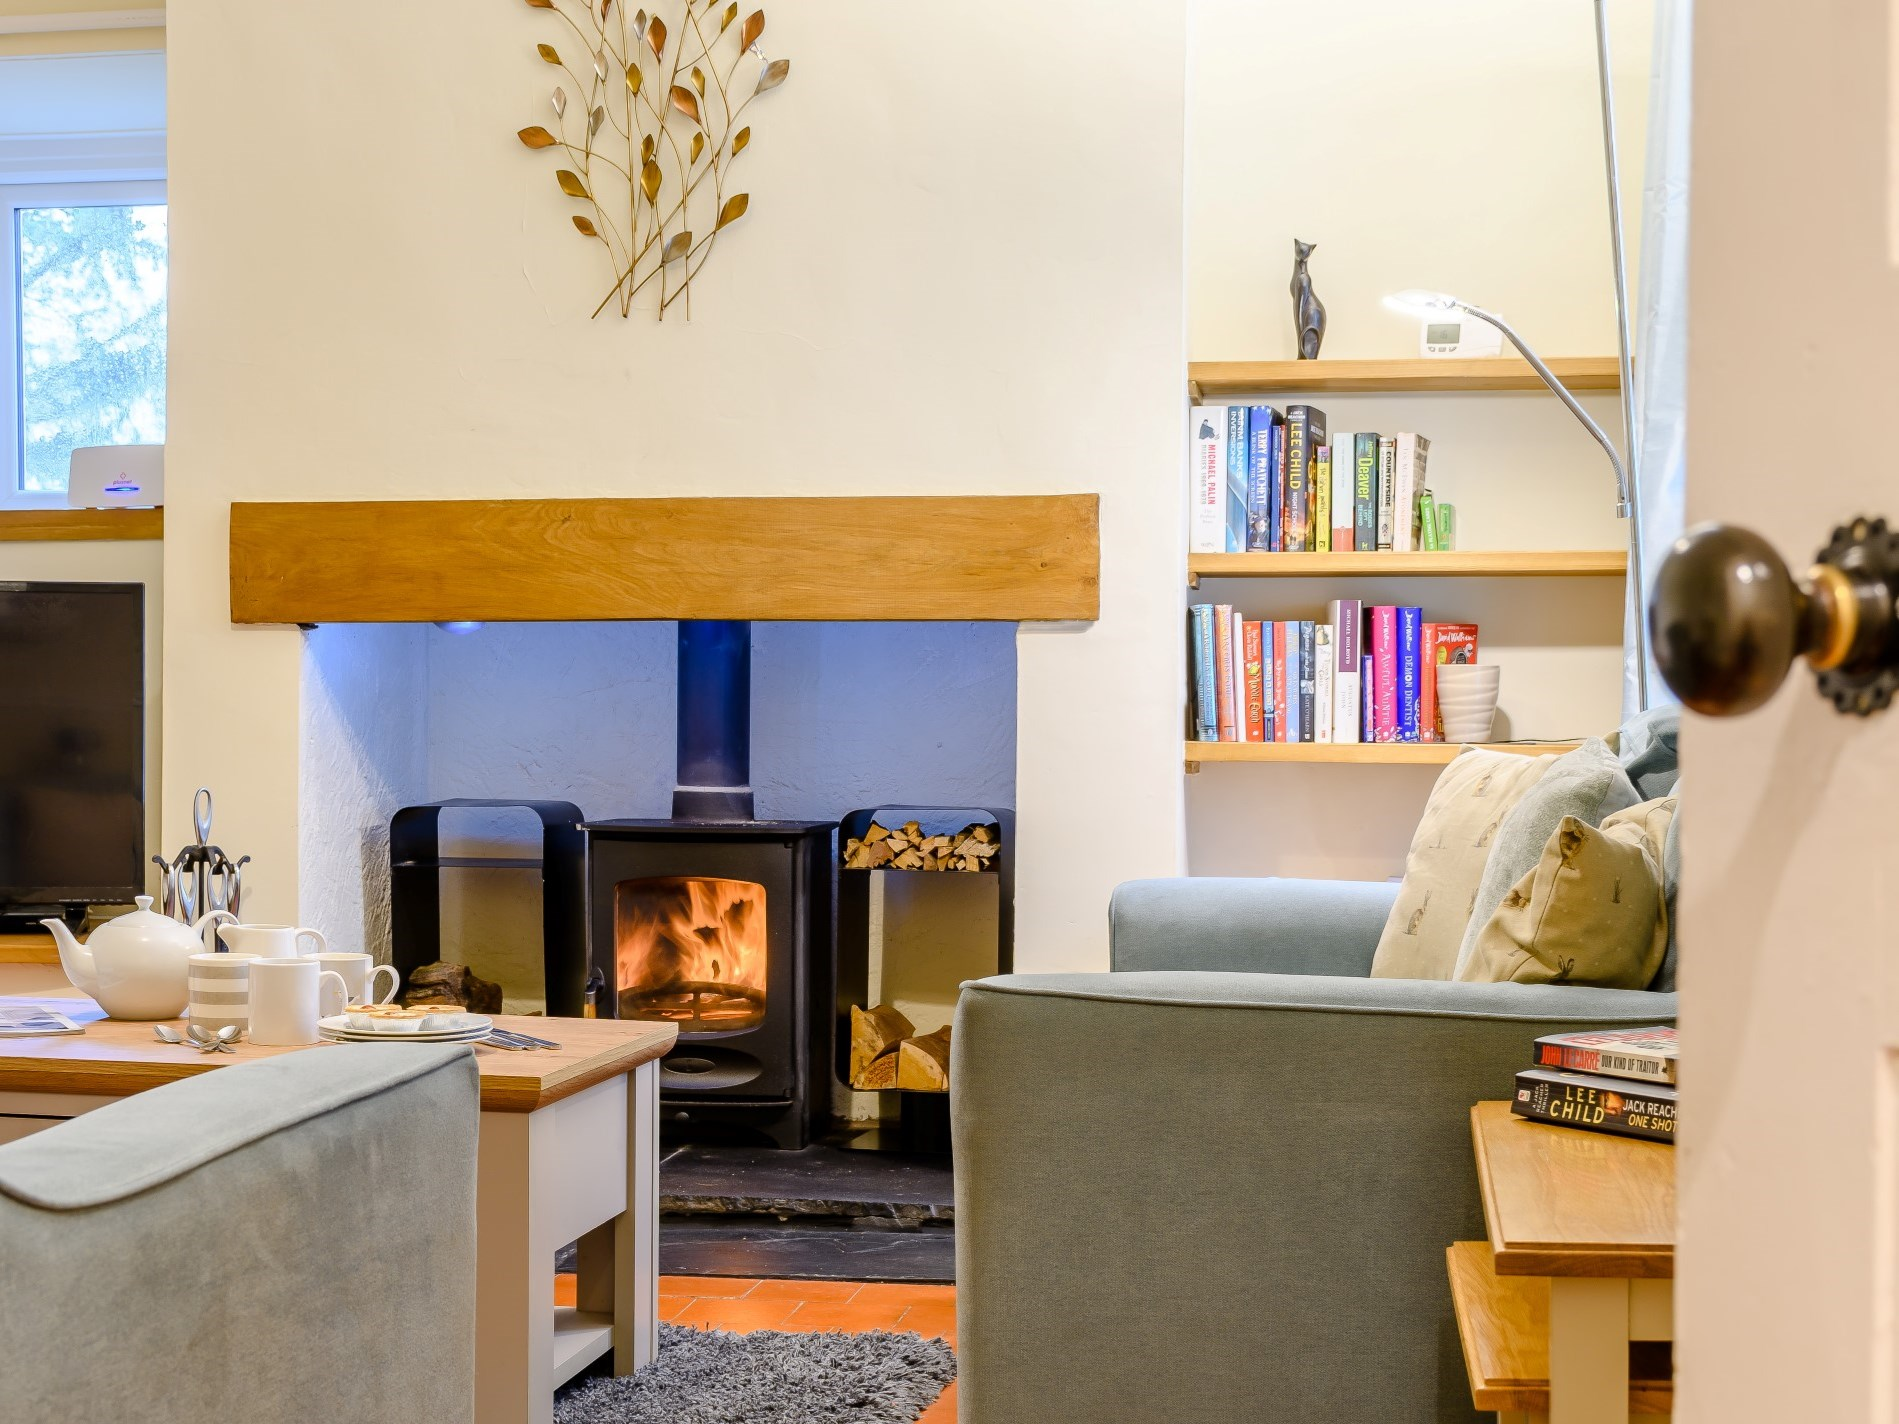 4 Bedroom Cottage in Corwen, Snowdonia, North Wales and Cheshire